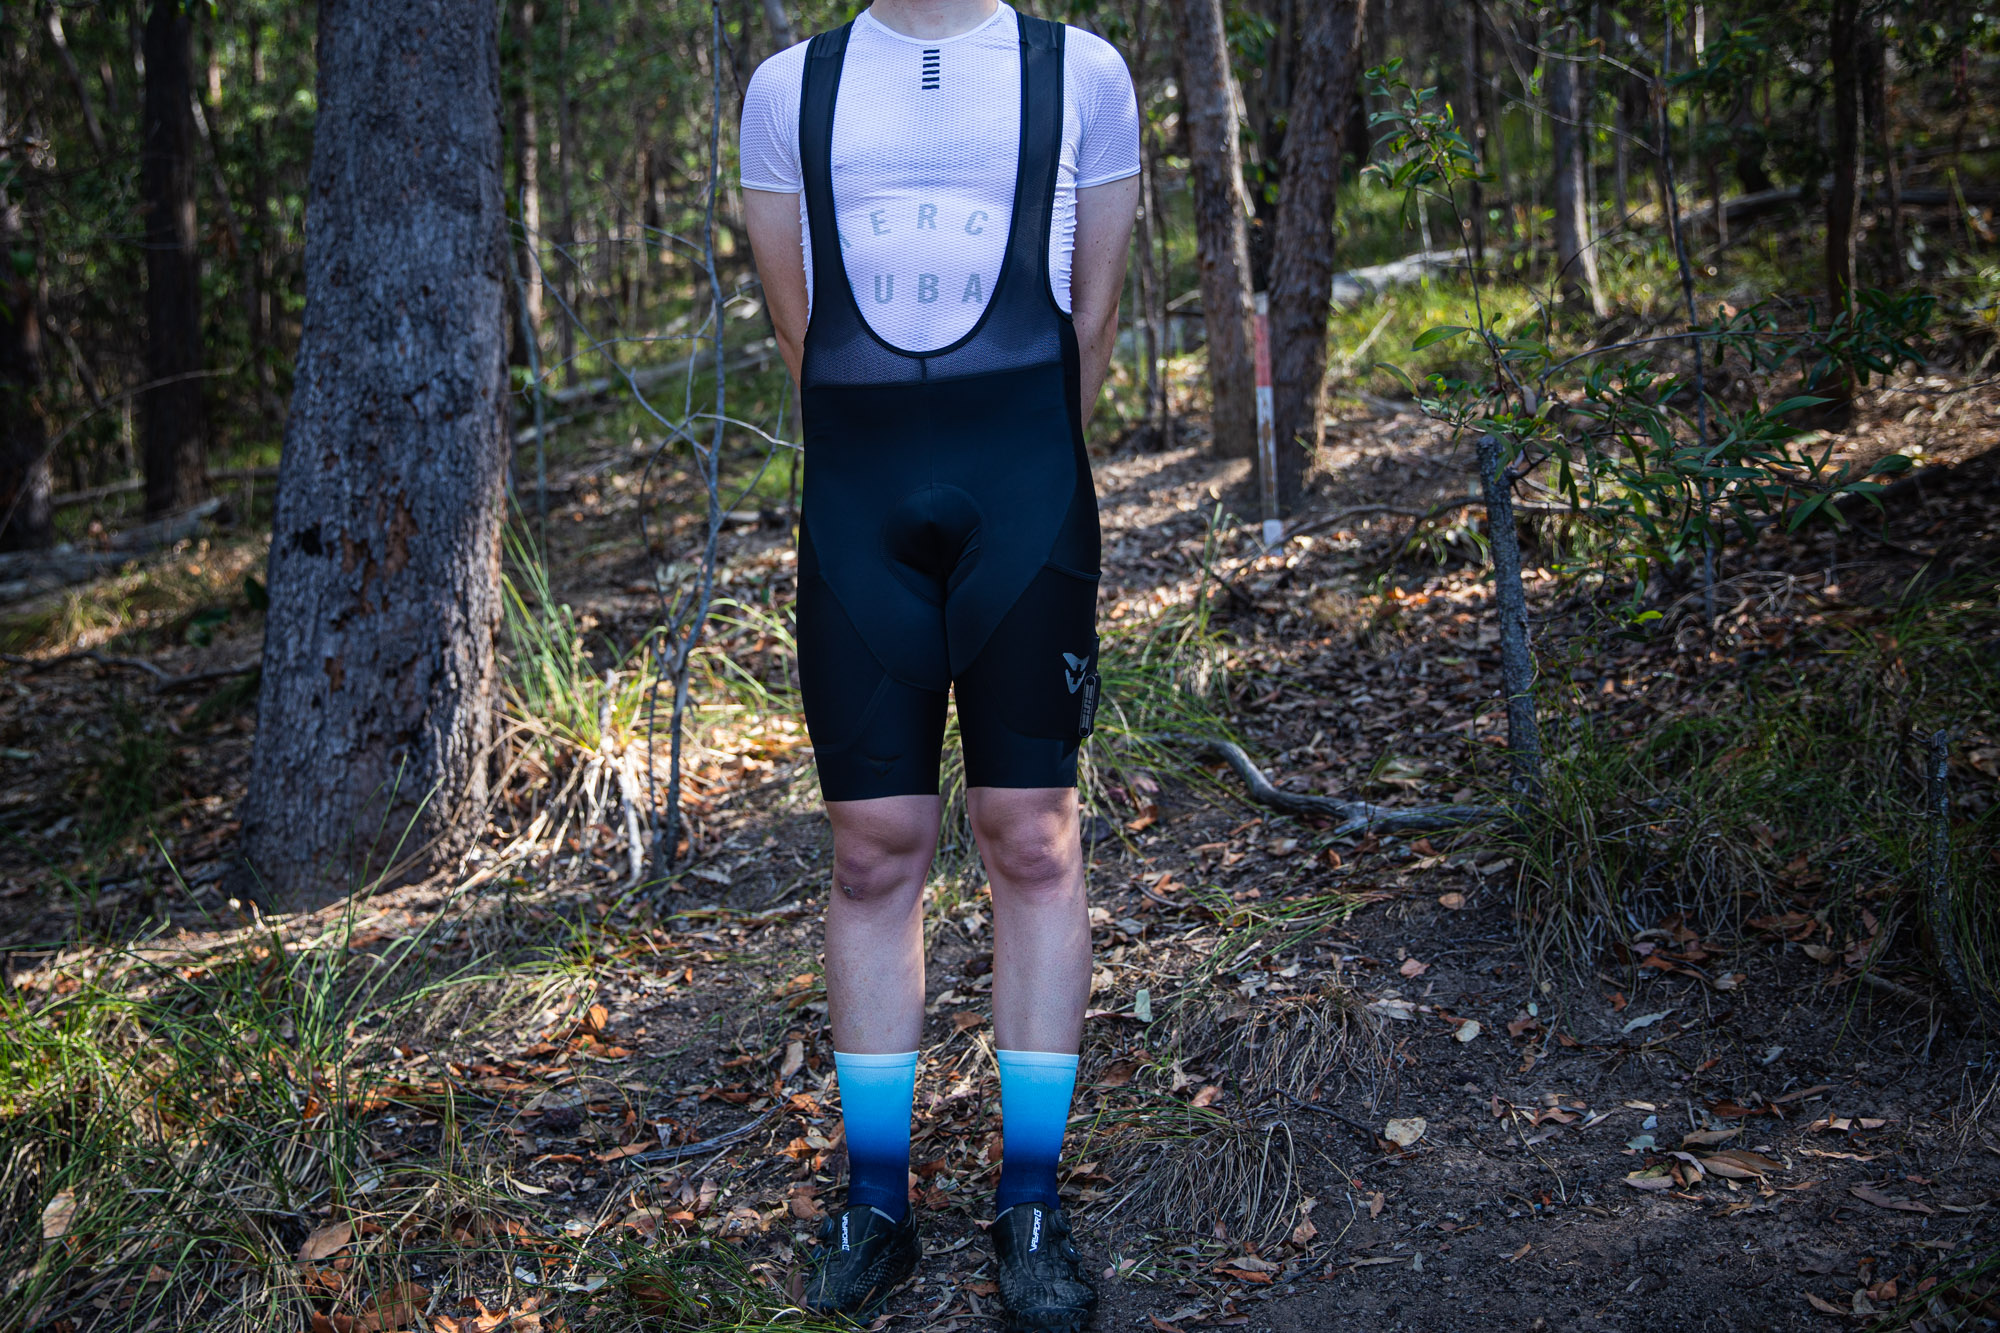 Cuore Pioneer cargo bib shorts review